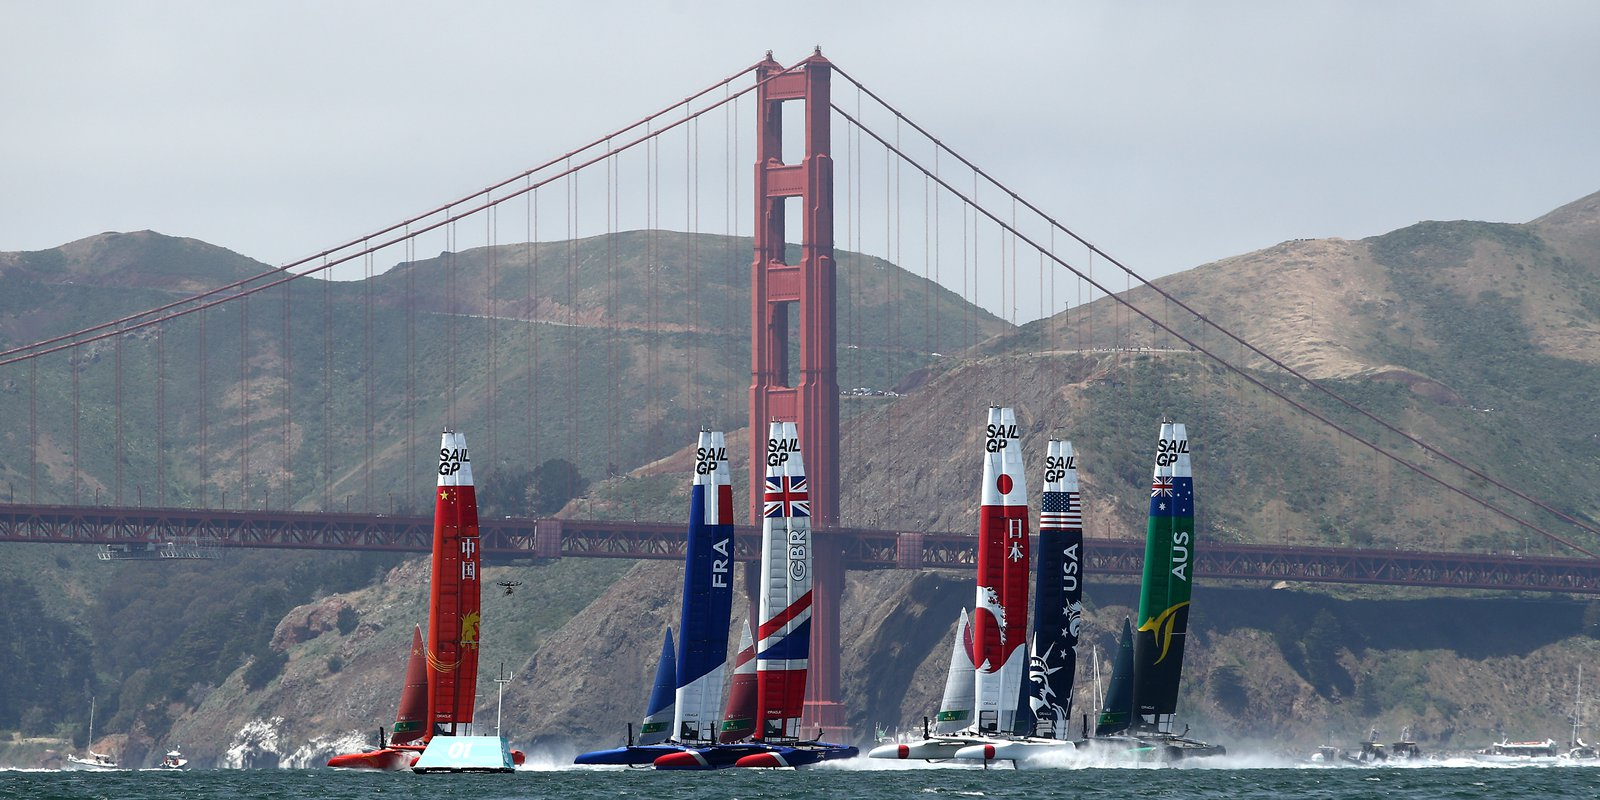 Teams from France, Great Britain, the US, China, Australia and Japan race against each other during the SailGP on 4 May 2019 in San Francisco, California.